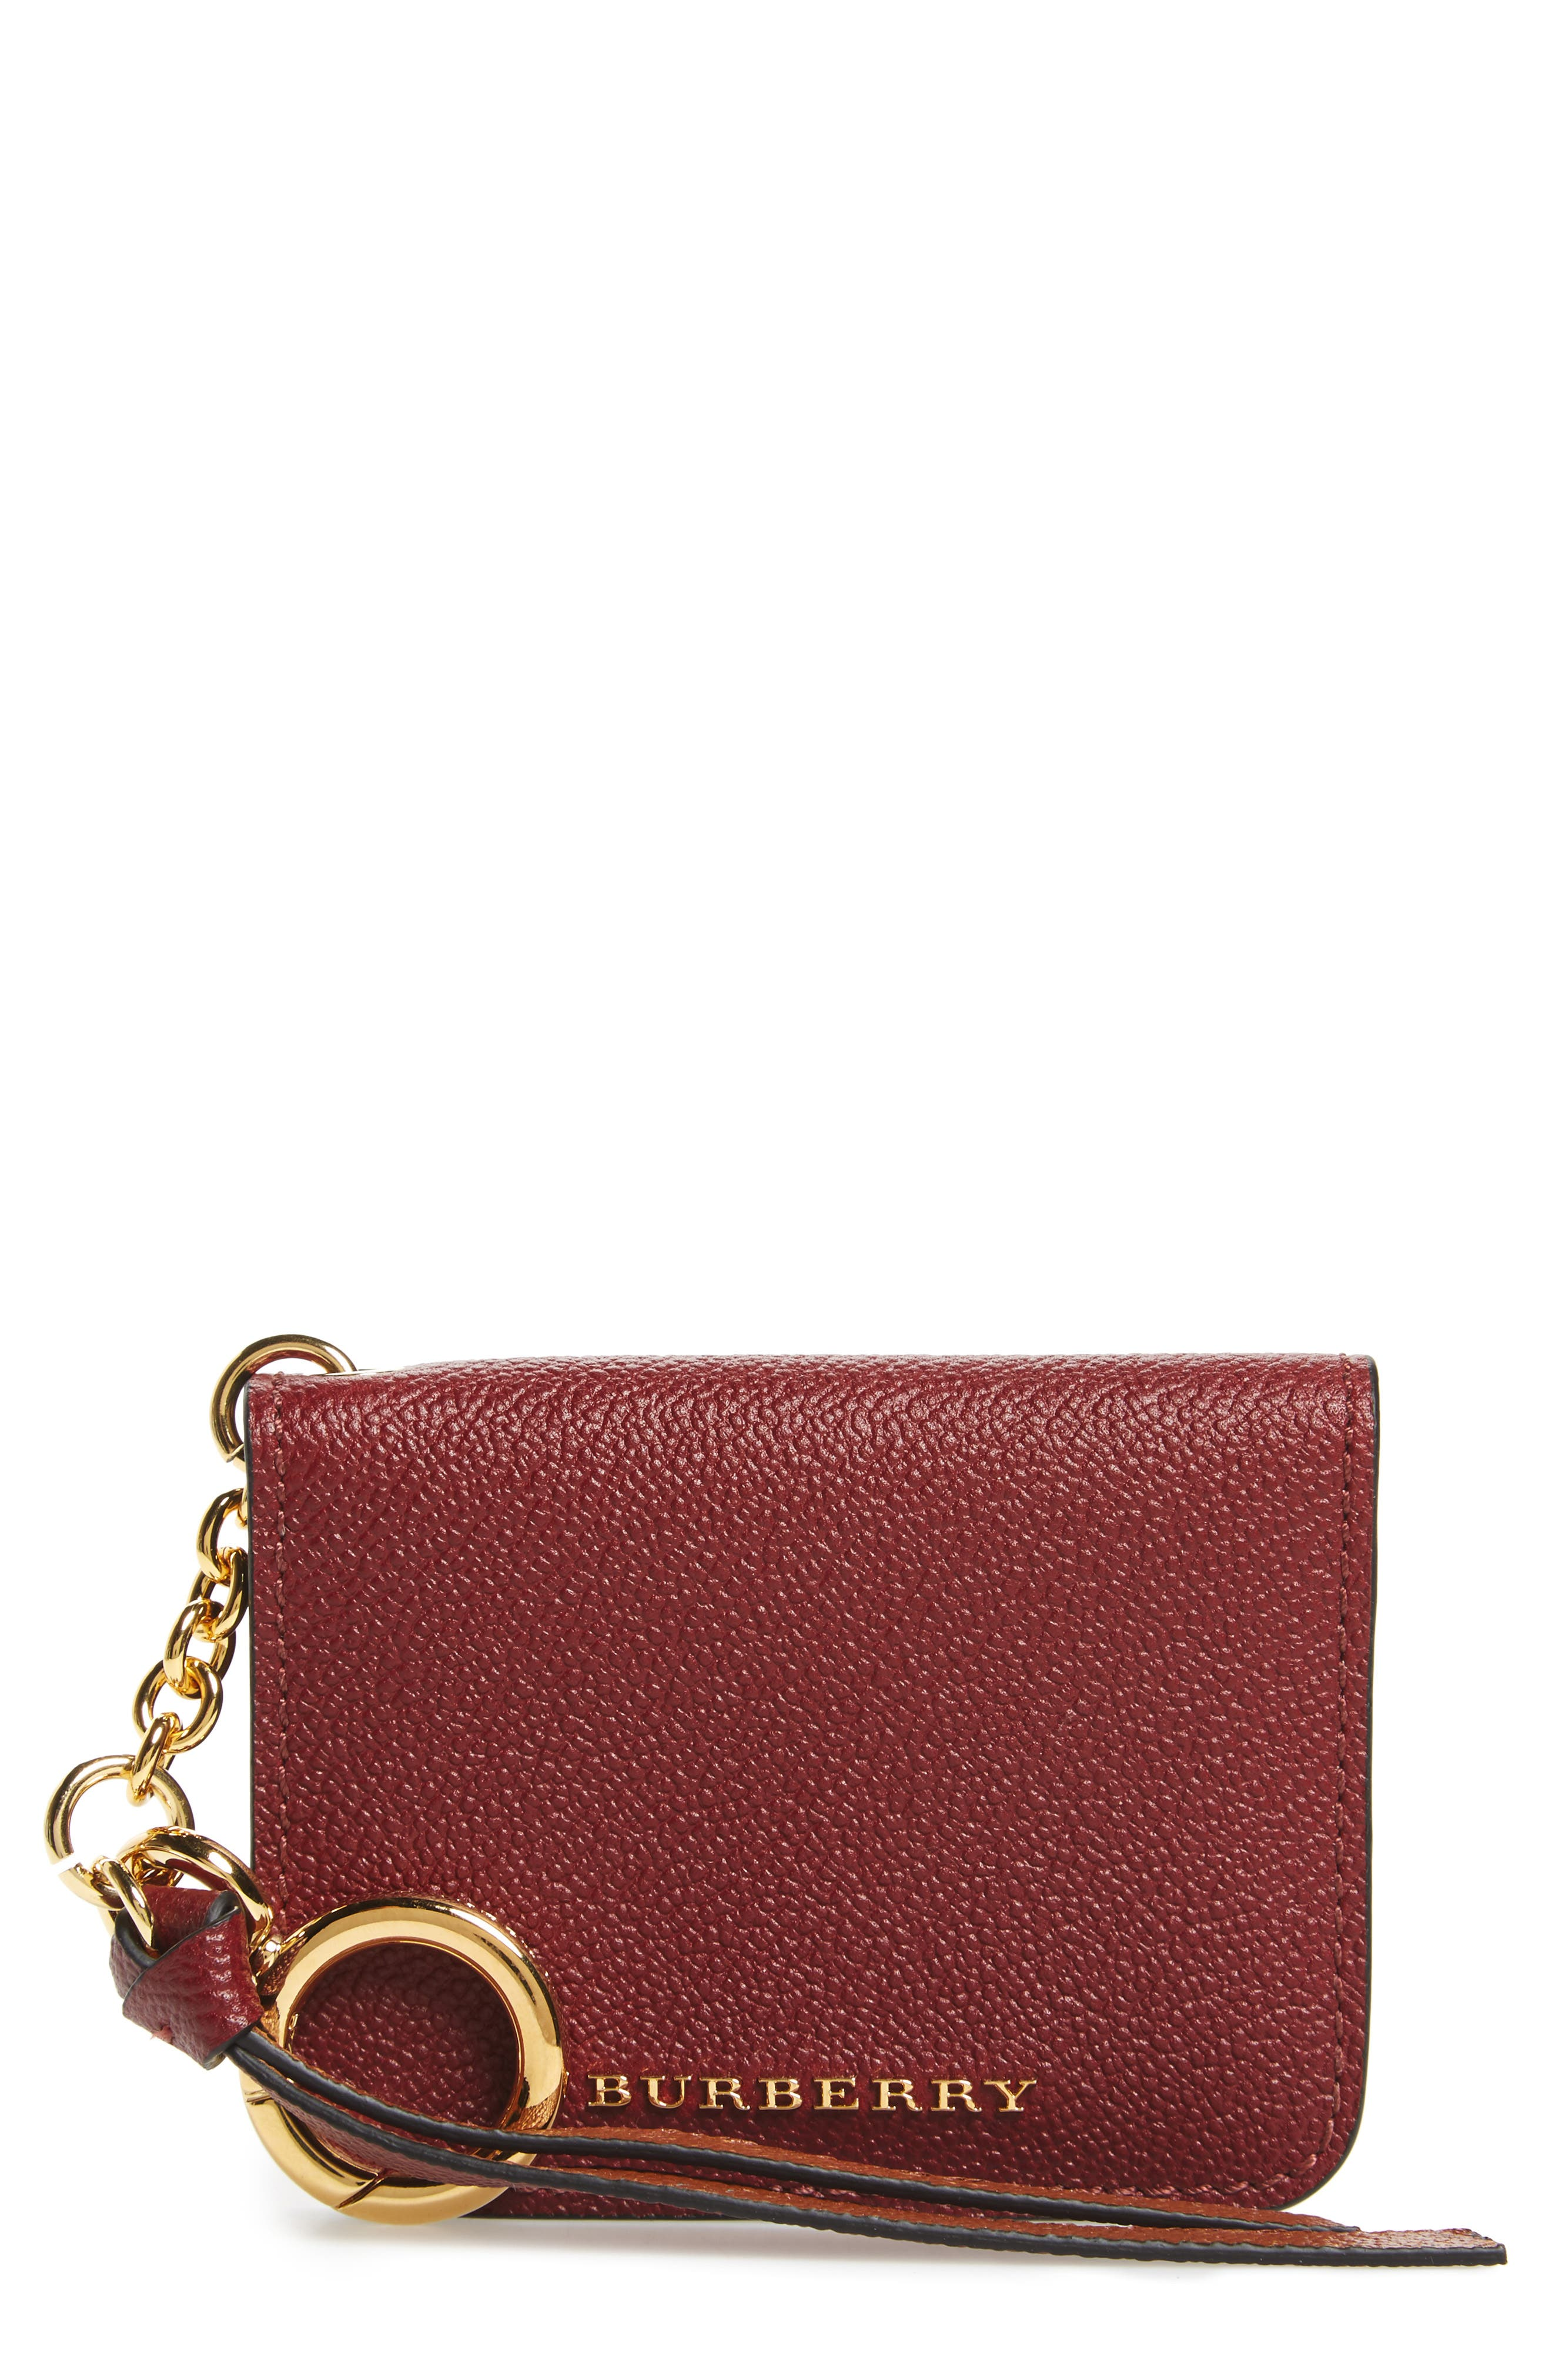 Alternate Image 1 Selected - Burberry Camberwellid Leather Card Case Bag Charm